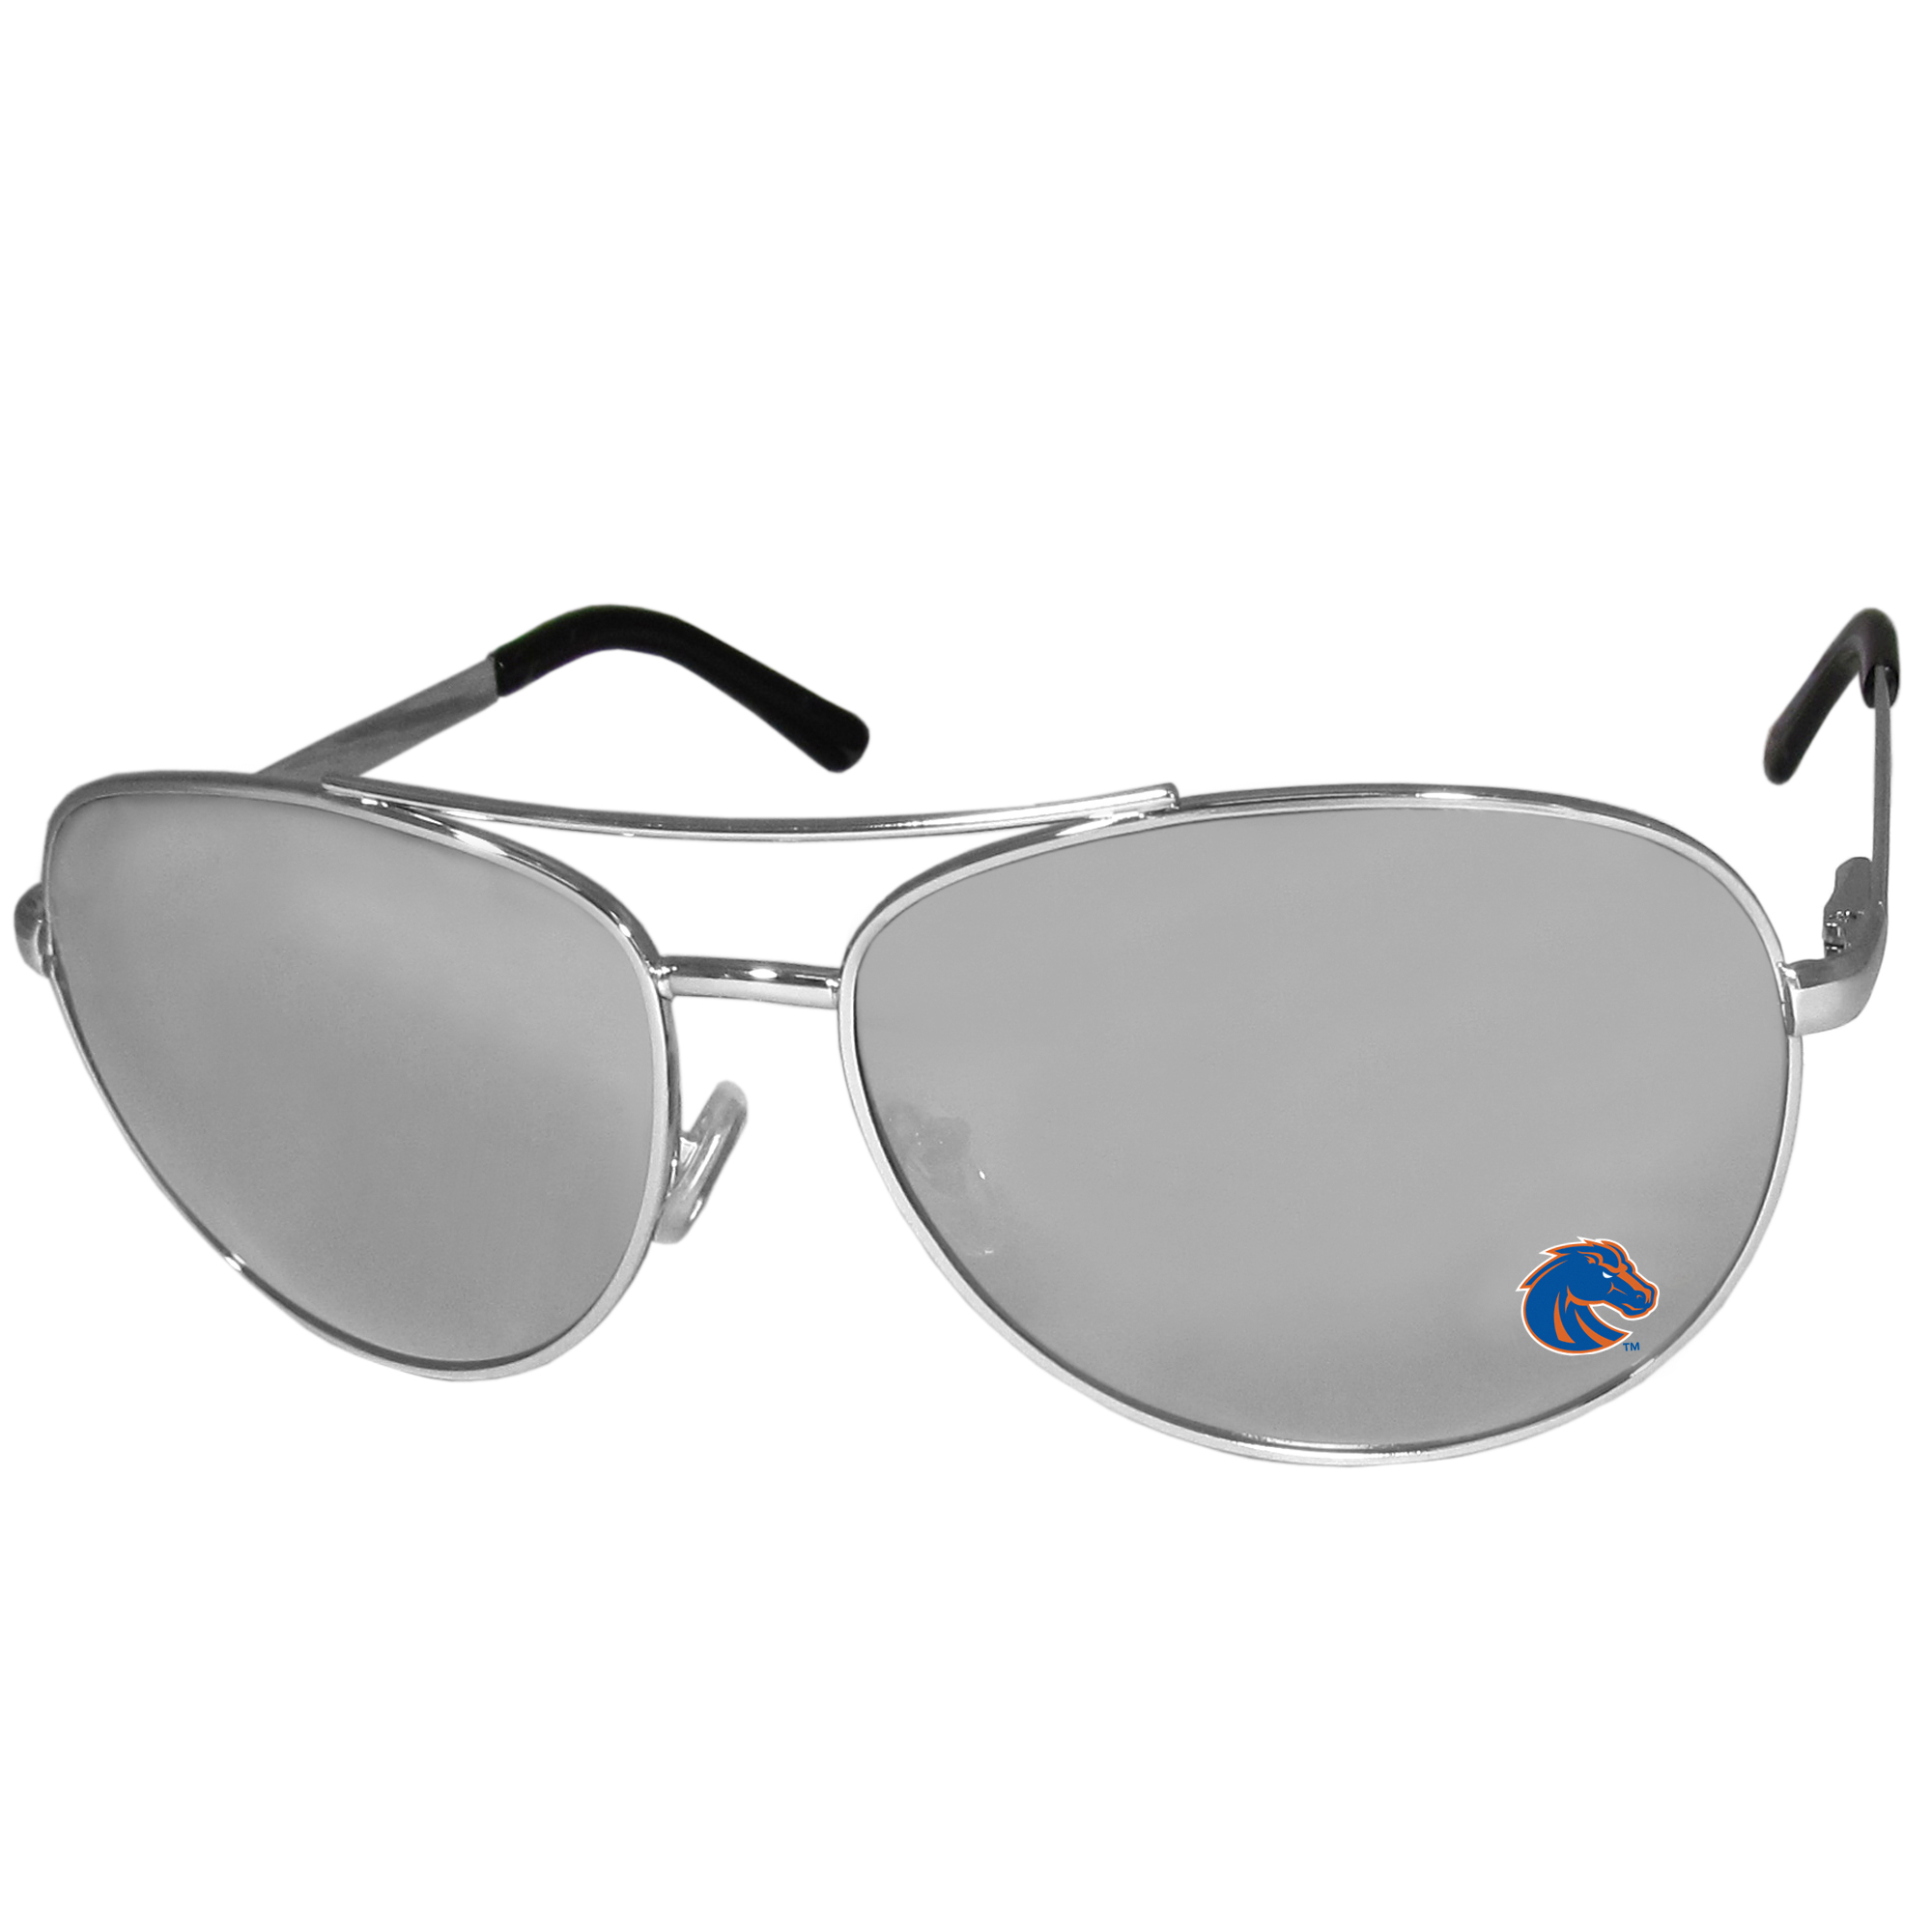 Boise St. Broncos Aviator Sunglasses - Our aviator sunglasses have the iconic aviator style with mirrored lenses and metal frames. The glasses feature a silk screened Boise St. Broncos logo in the corner of the lense. 100% UVA/UVB protection.